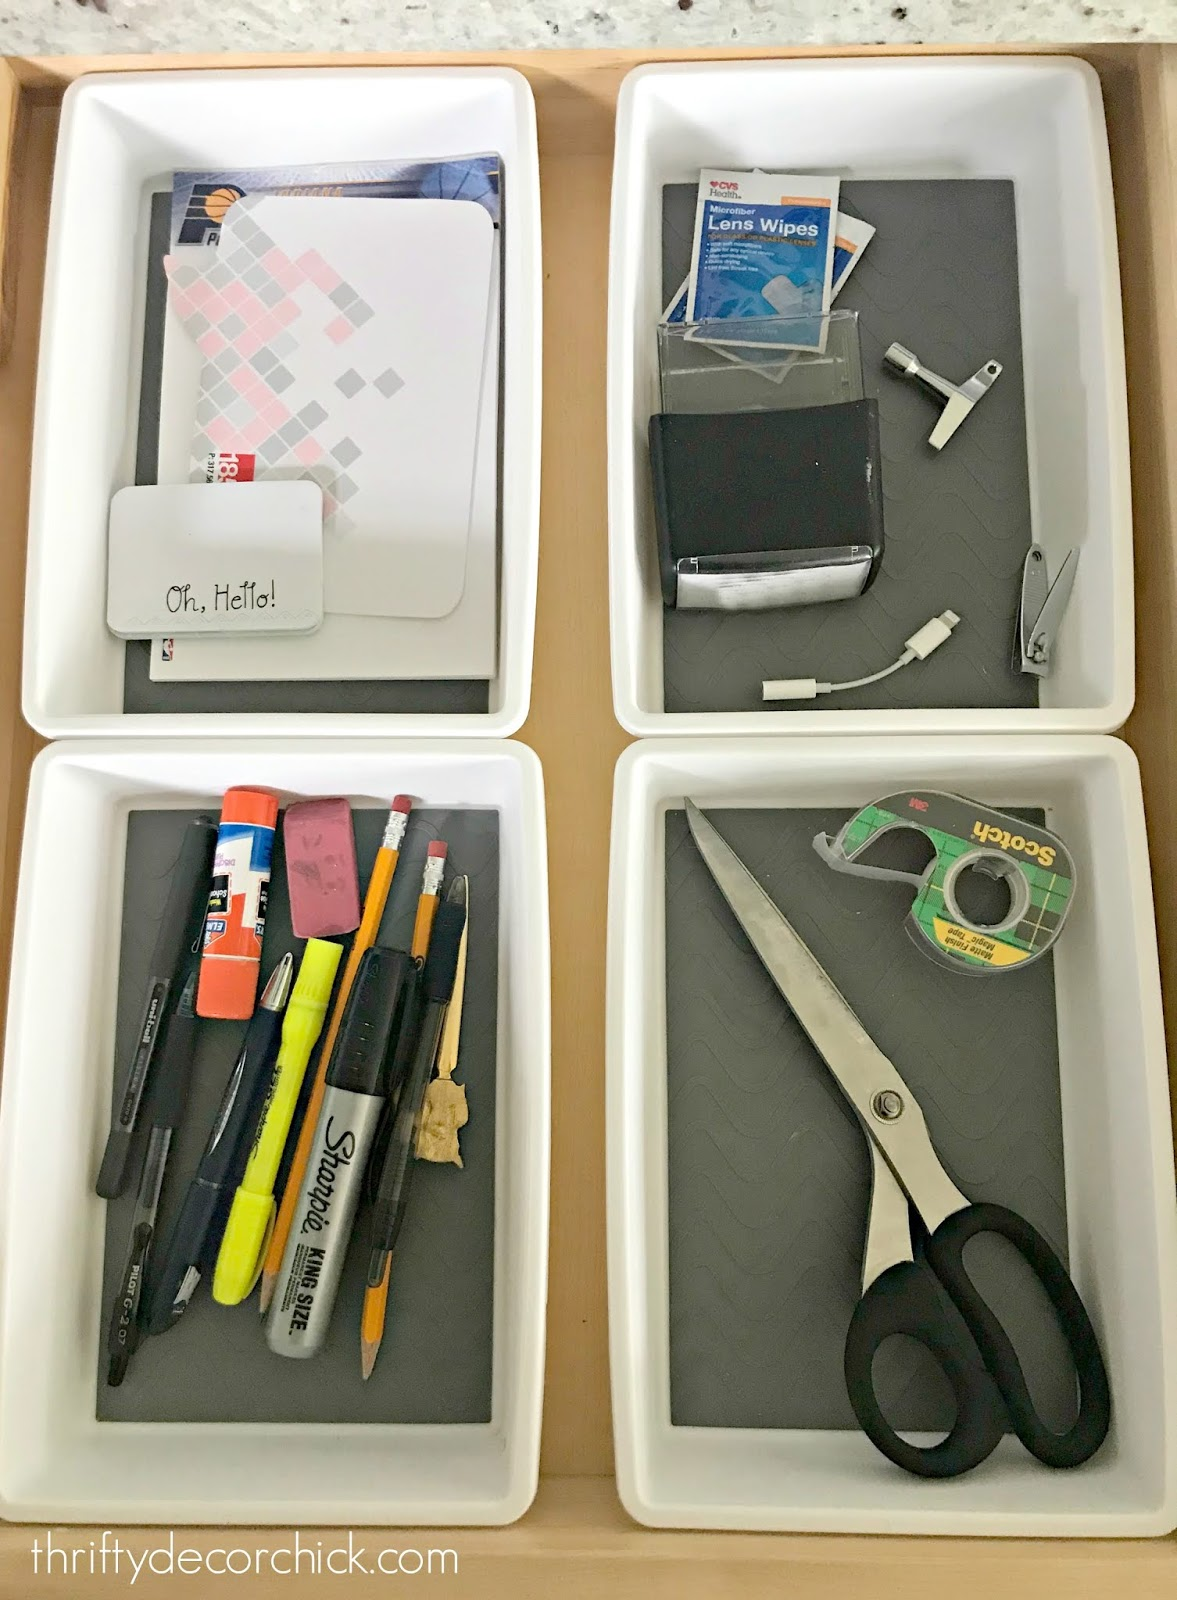 Organized junk drawer tips